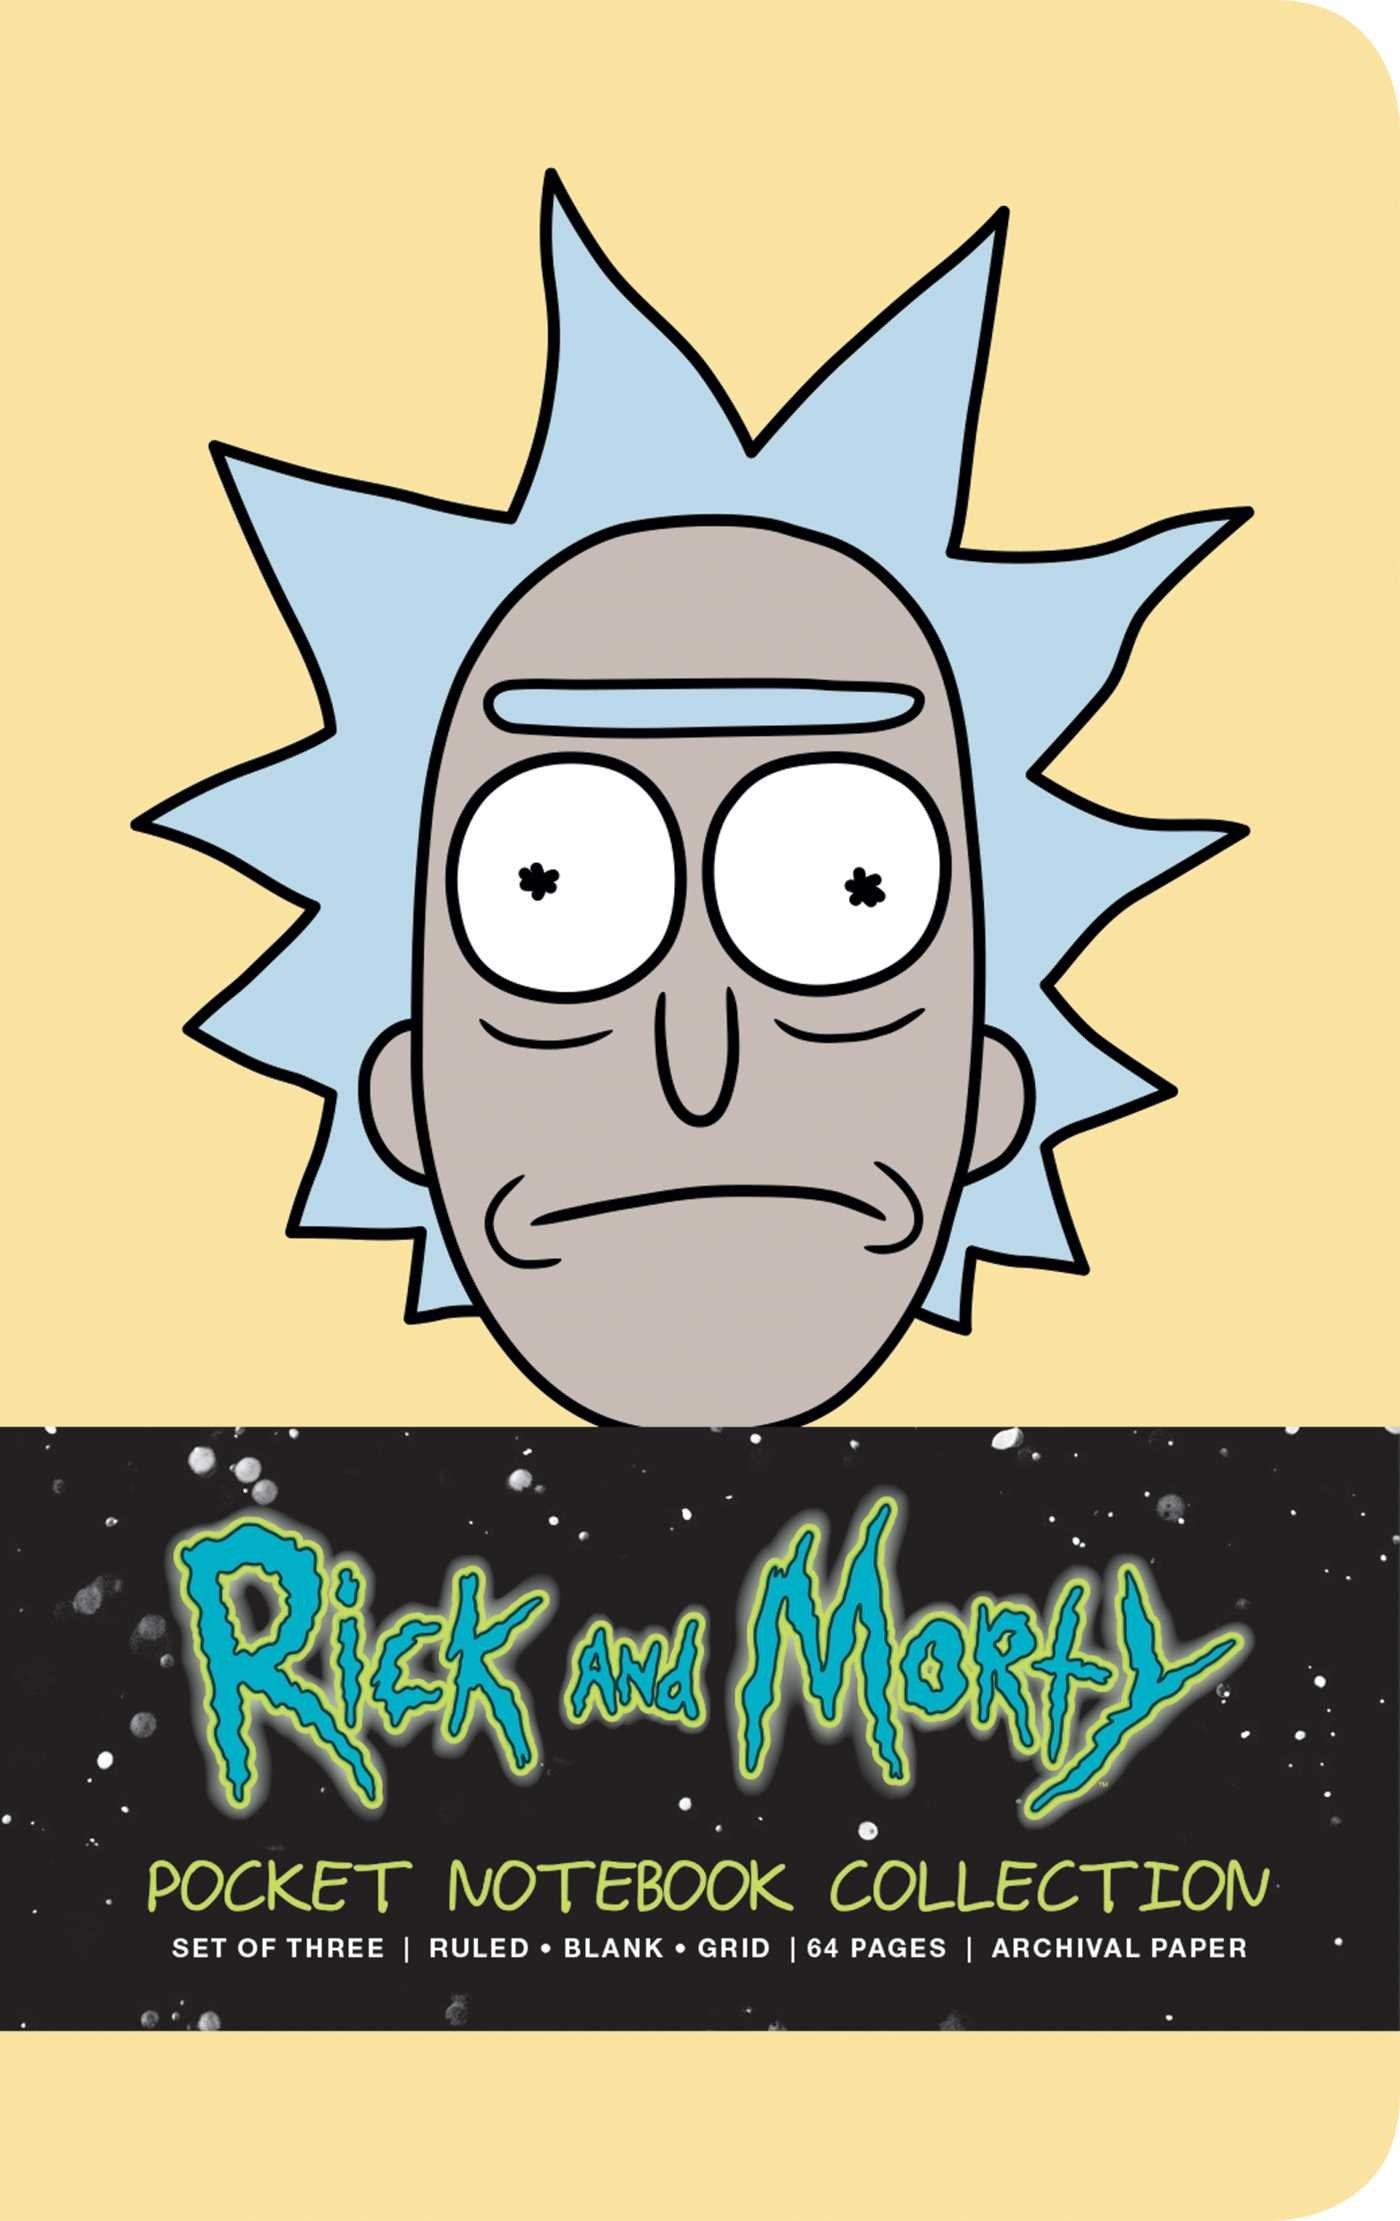 Rick and morty pocket notebook collection set of 3 9781683833079.in01